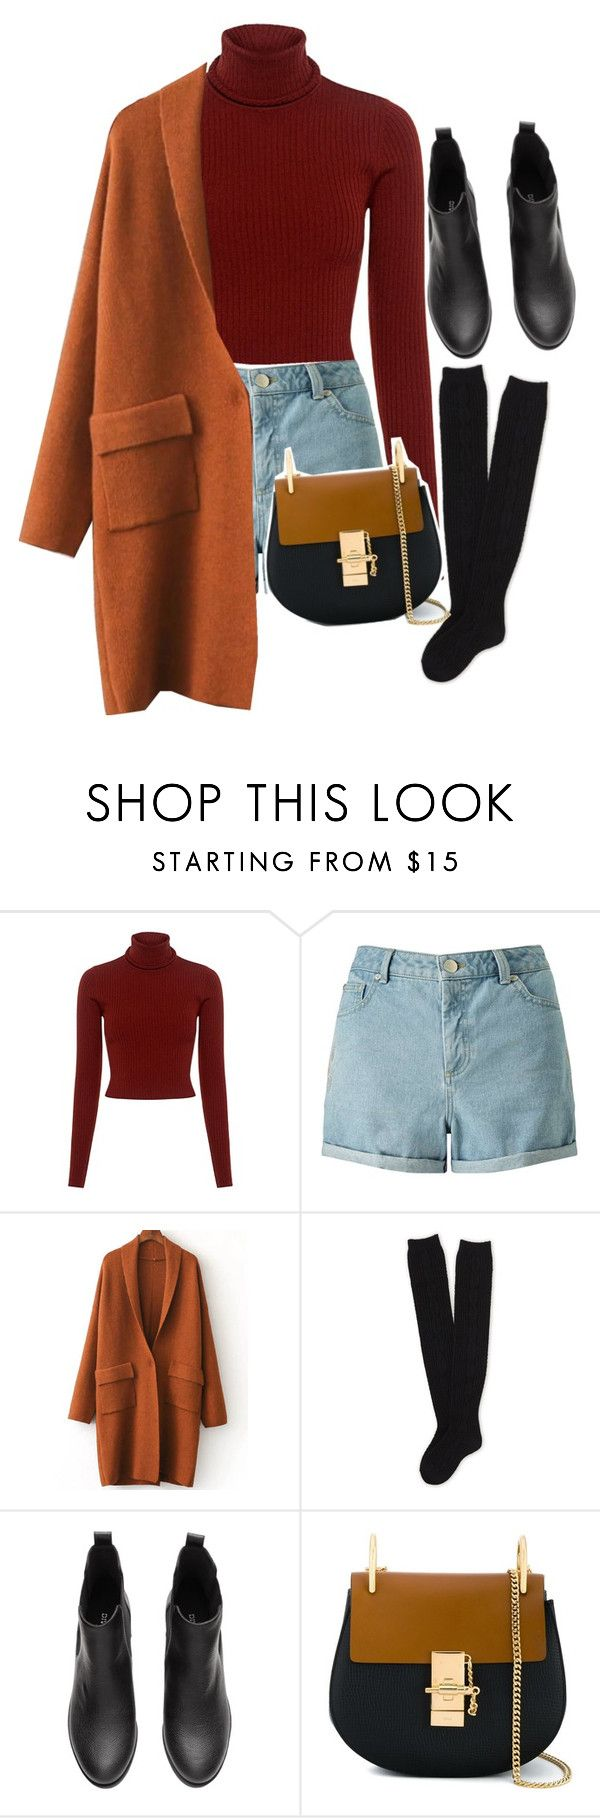 """""""noora skam"""" by bruhkyu ❤ liked on Polyvore featuring A.L.C., Miss Selfridge, Aéropostale and Chloé"""